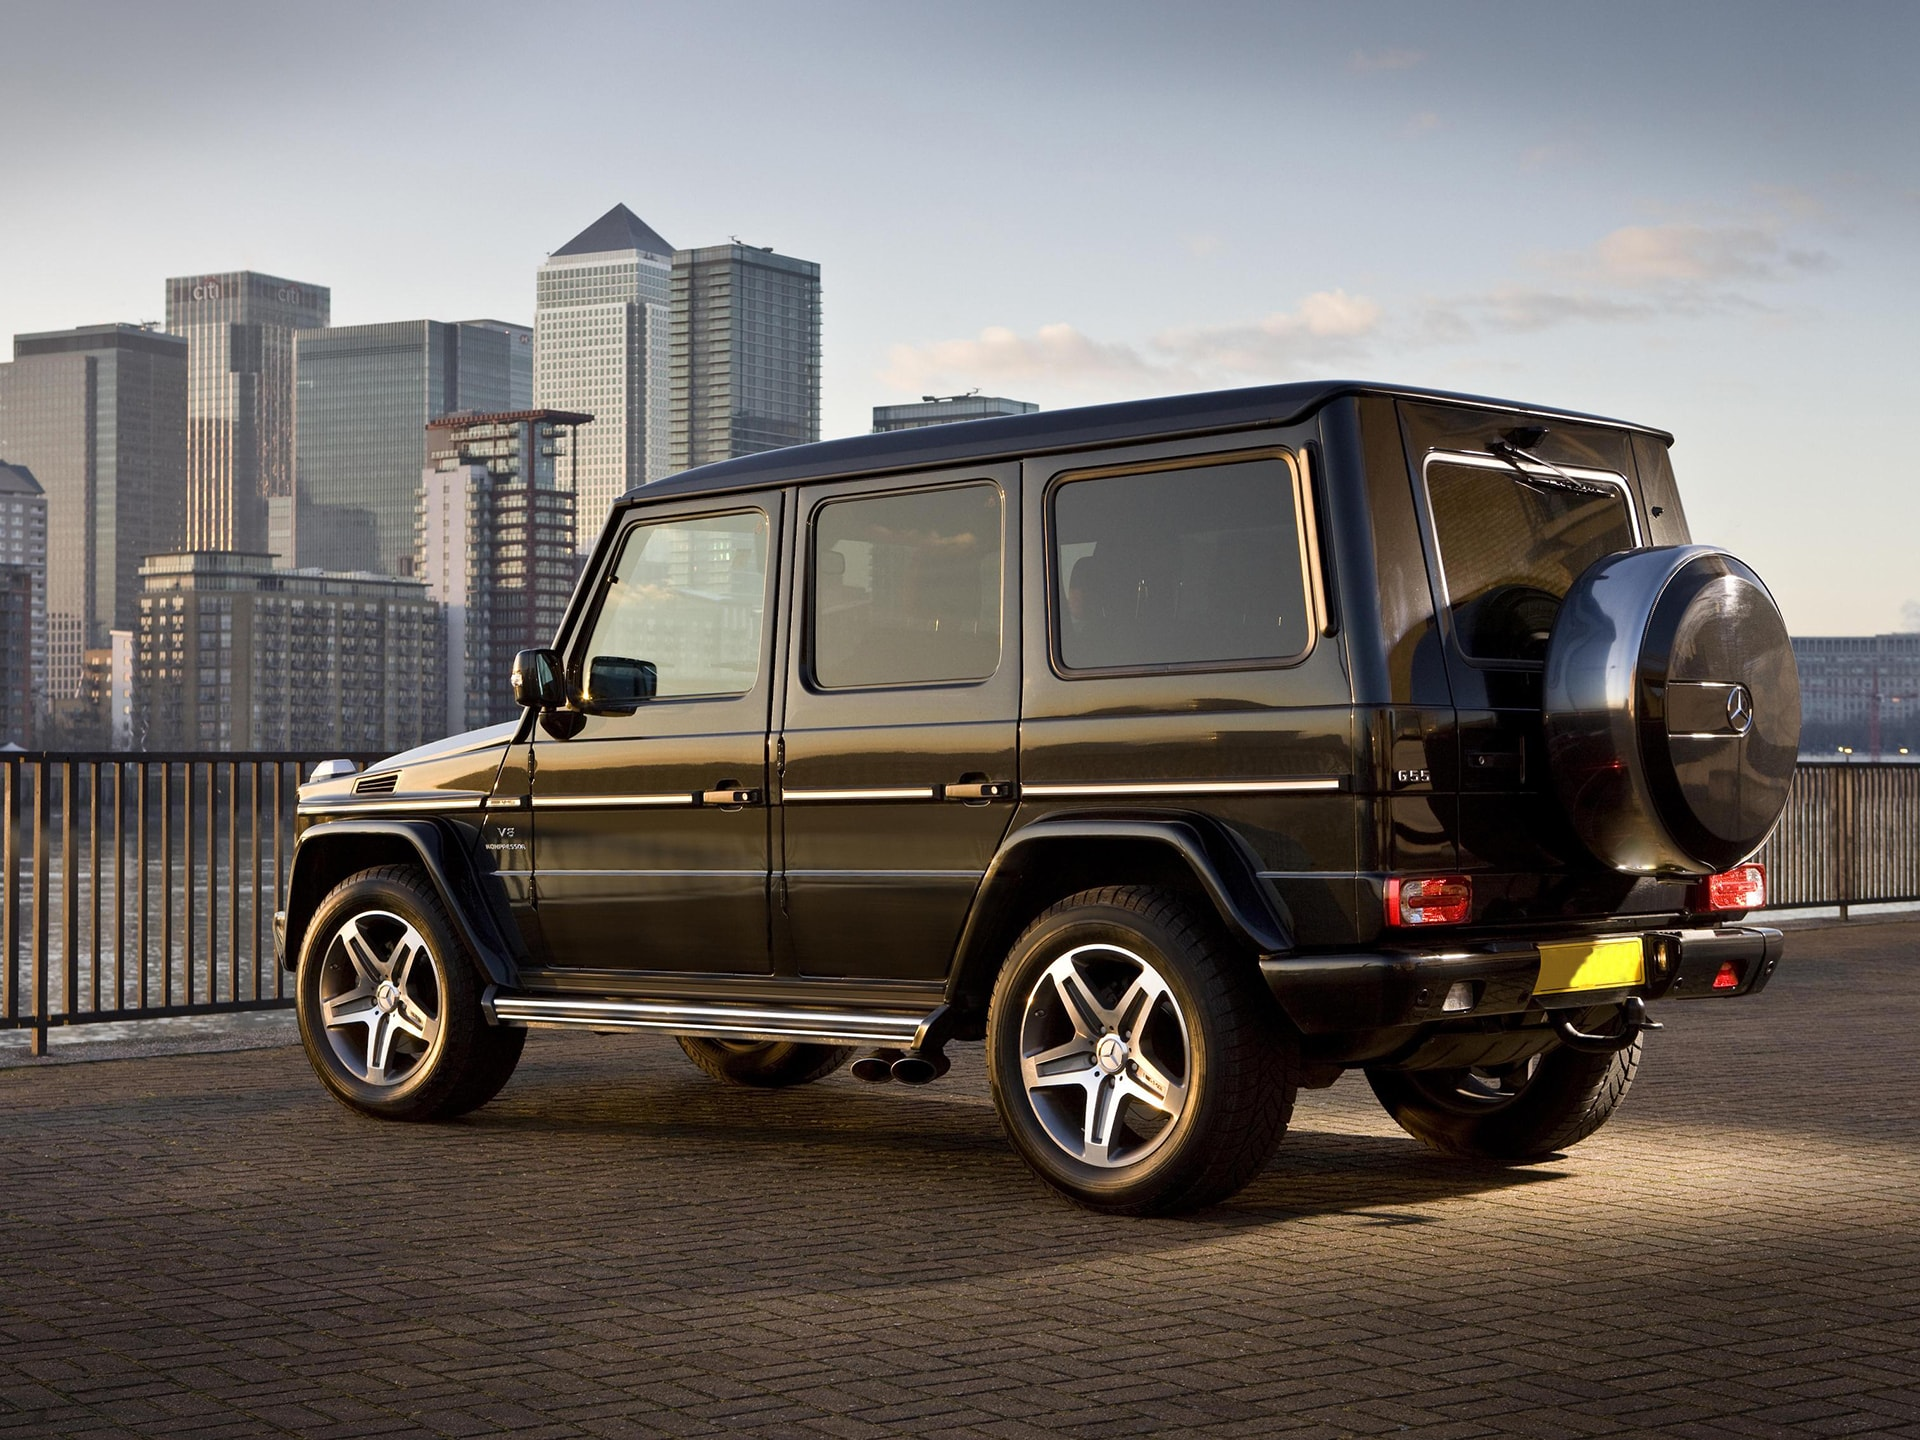 Mercedes benz g class gel ndewagen rent in astana toplimo kz for Mercedes benz g class pictures